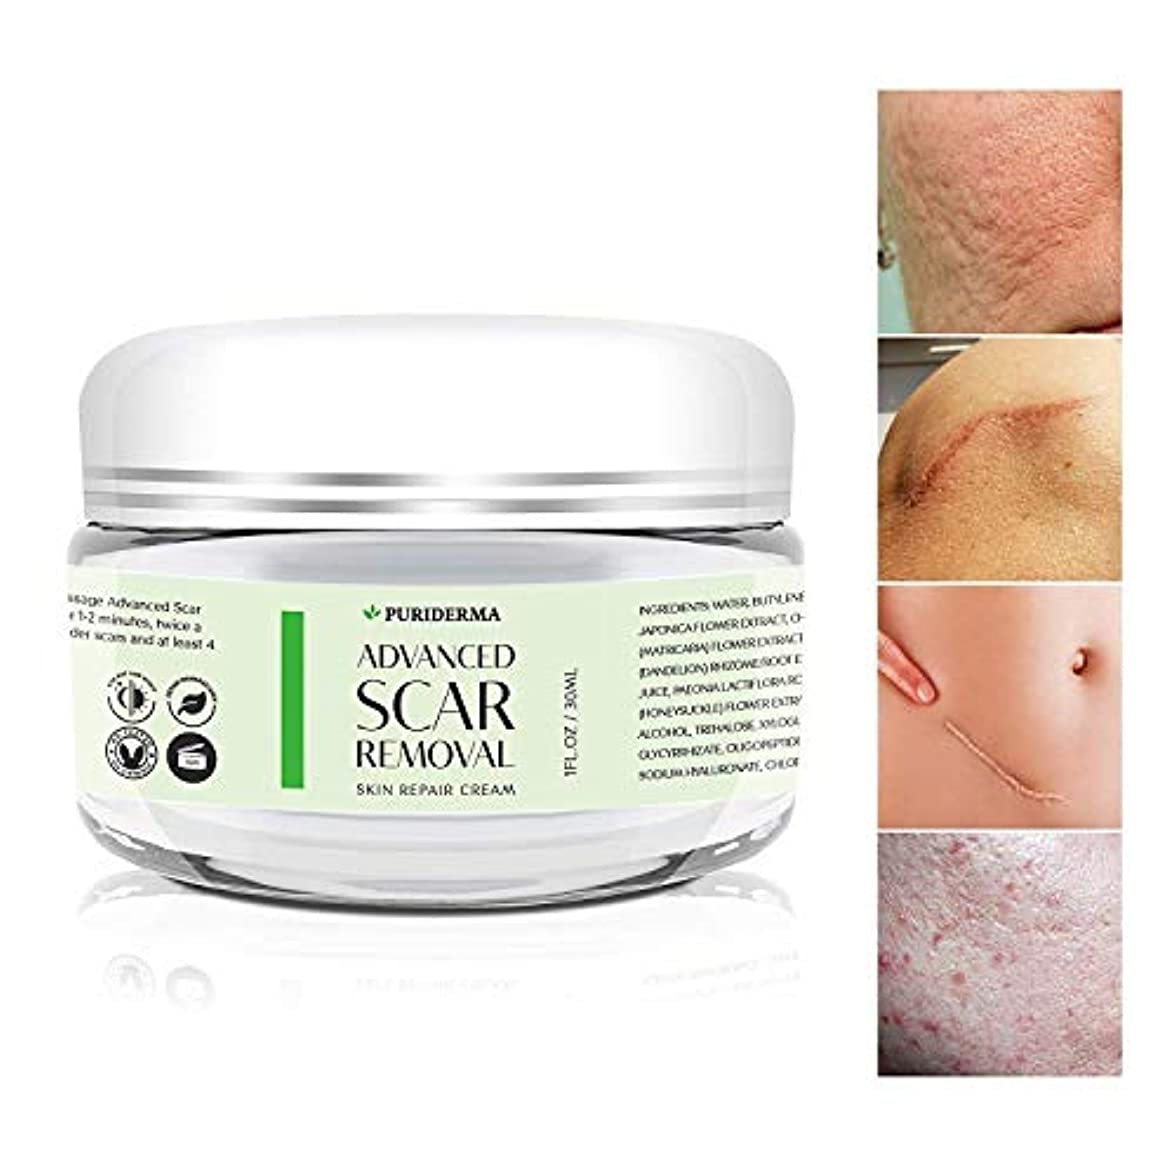 辞書戸棚論文Puriderma 社 の Advanced Scar Removal Cream (30 ml) 妊娠線 や 傷跡 修復に Advanced Treatment for Face & Body, Old & New Scars...